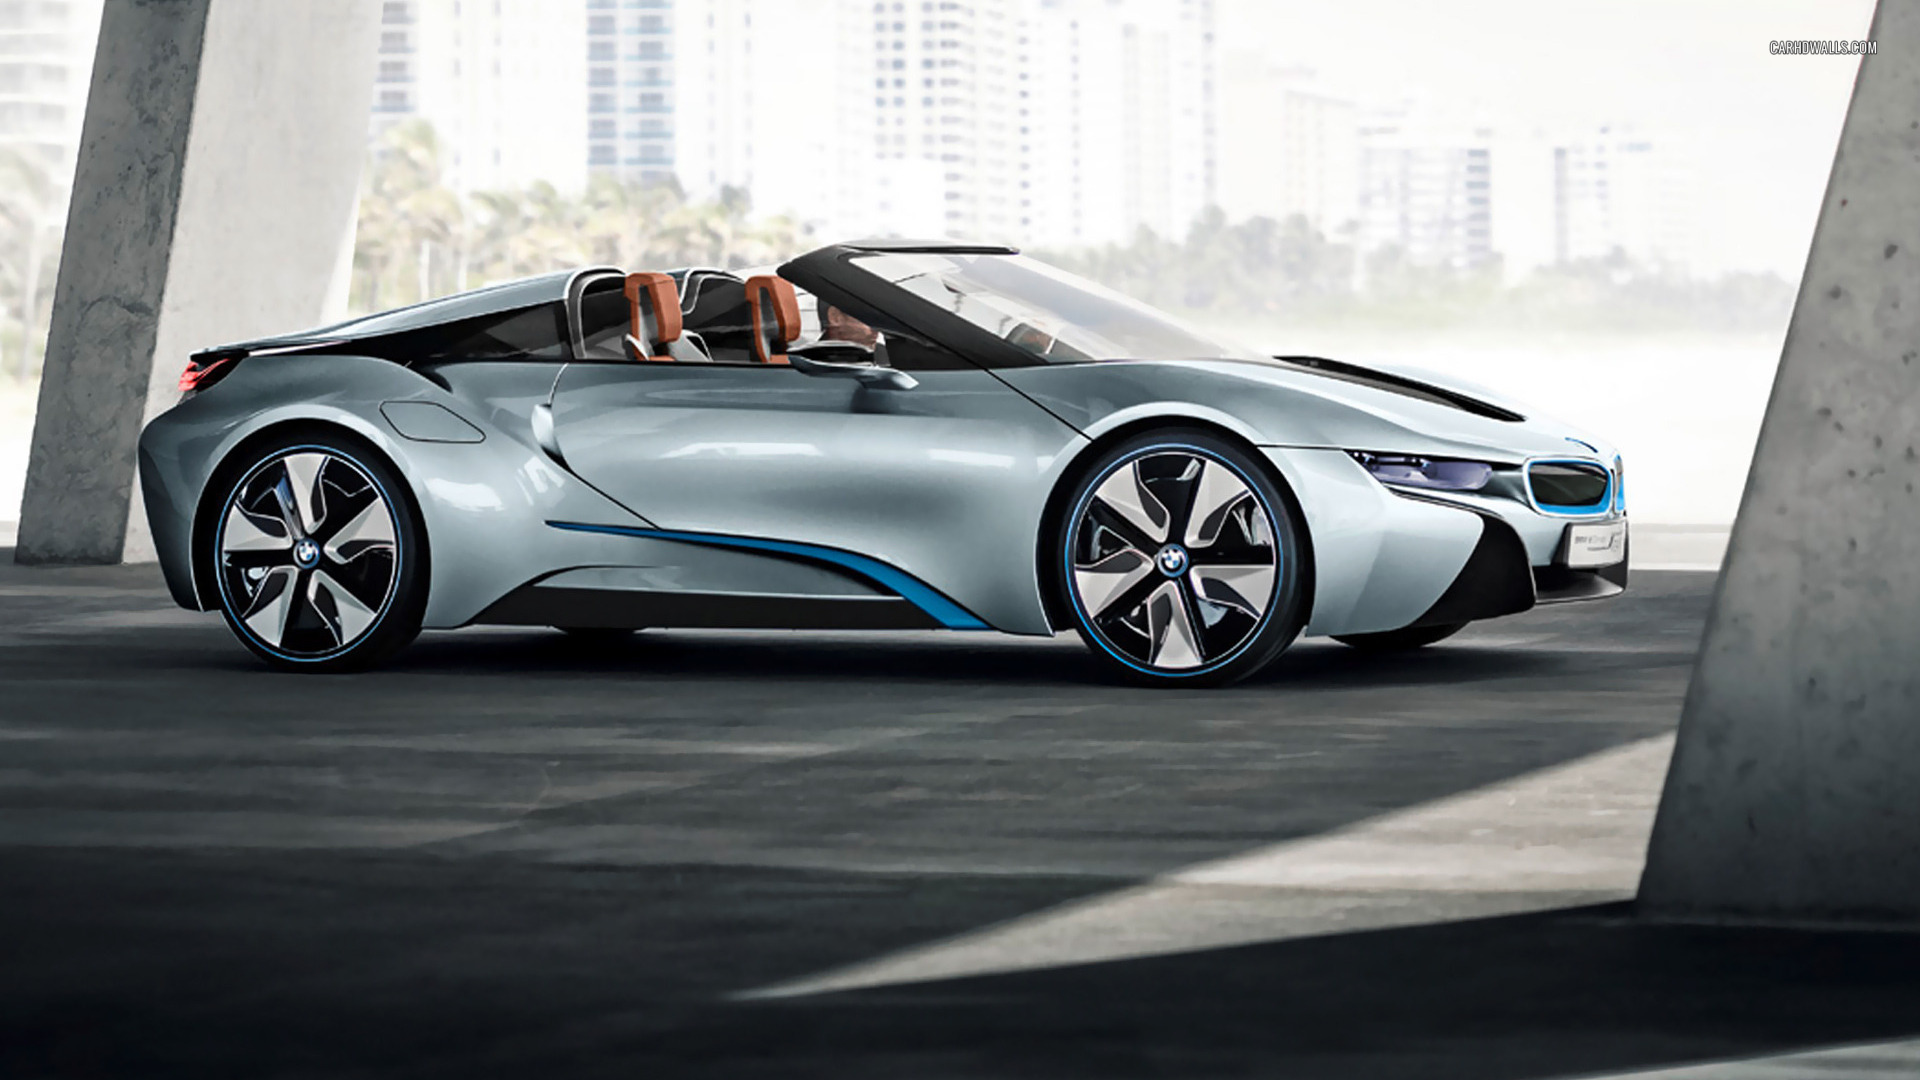 bmw i8 spyder concept to launch at ces 2016 gtspirit. Black Bedroom Furniture Sets. Home Design Ideas